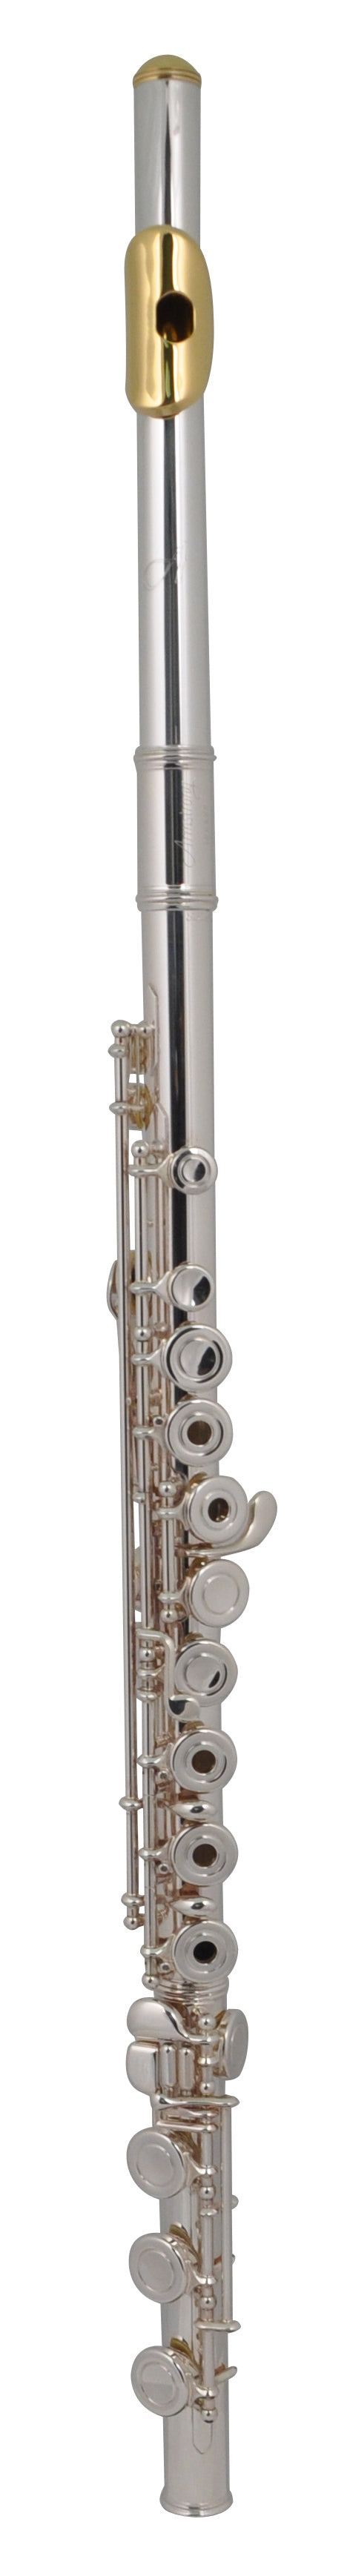 Armstrong 800BEF Intermediate Flute, Sterling Silver